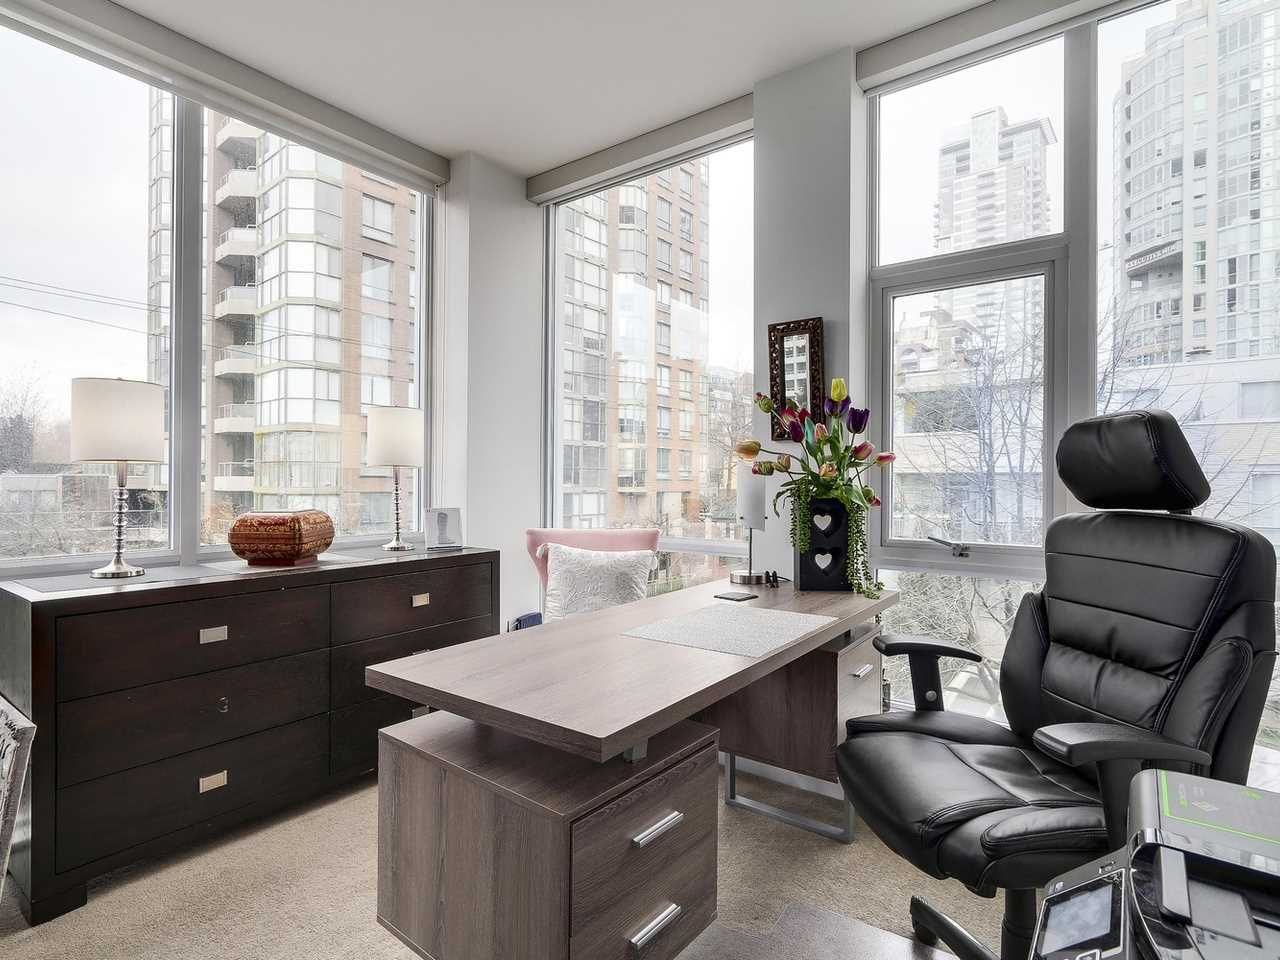 Photo 14: Photos: 401 1455 HOWE STREET in Vancouver: Yaletown Condo for sale (Vancouver West)  : MLS®# R2145939